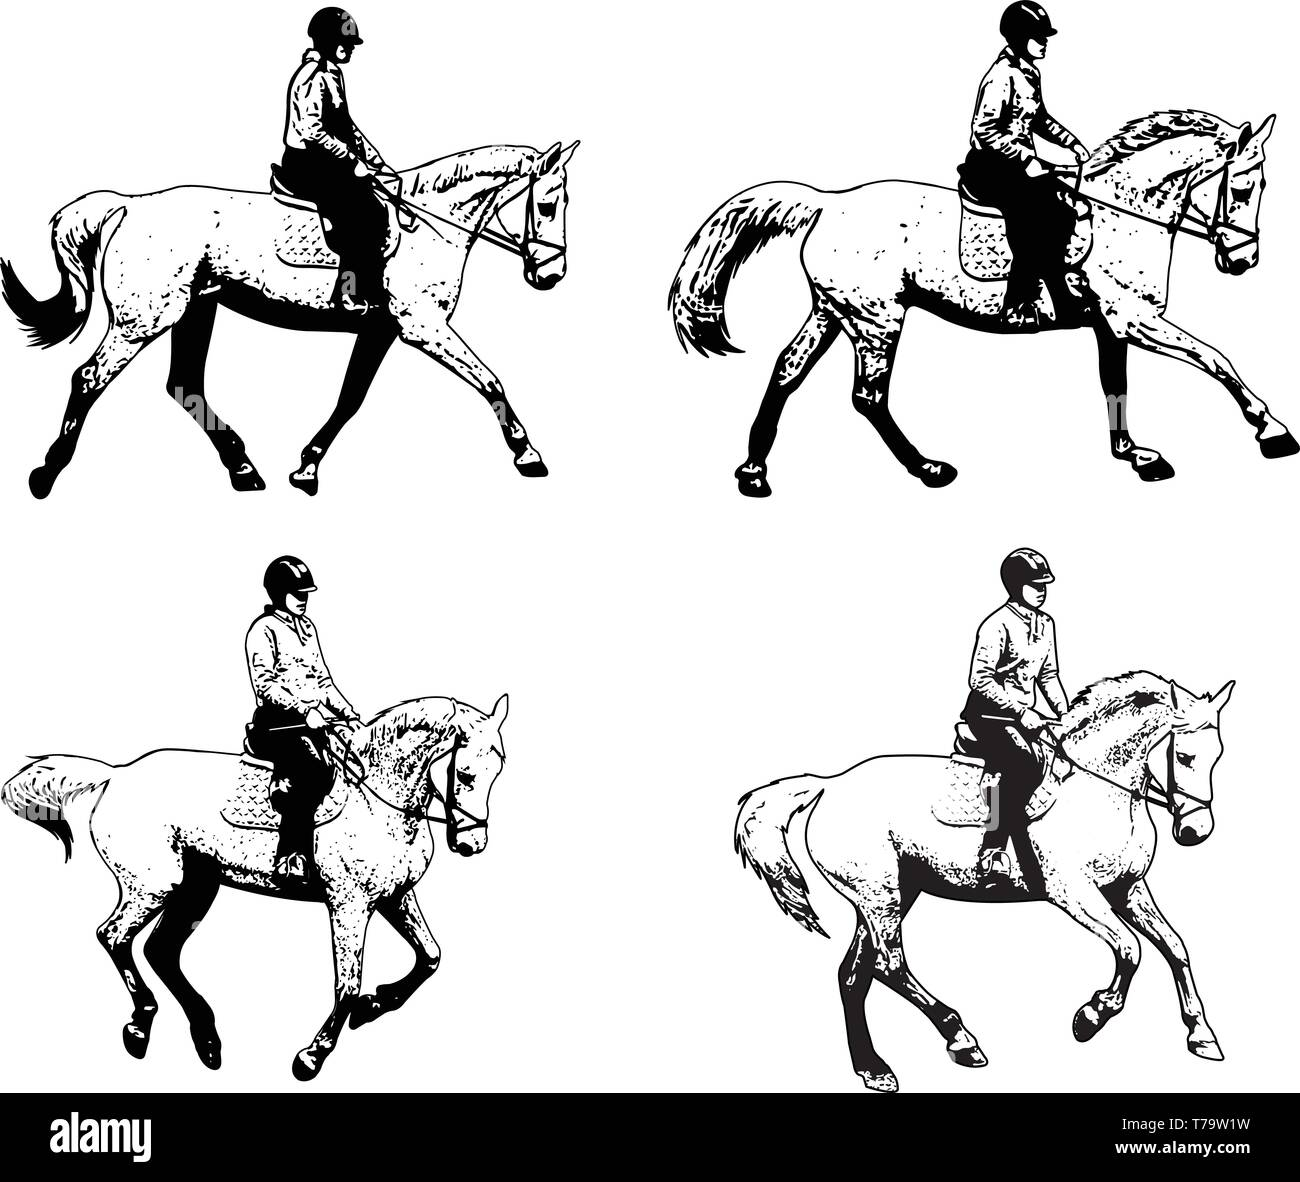 riding horses sketch illustration set - vector - Stock Image